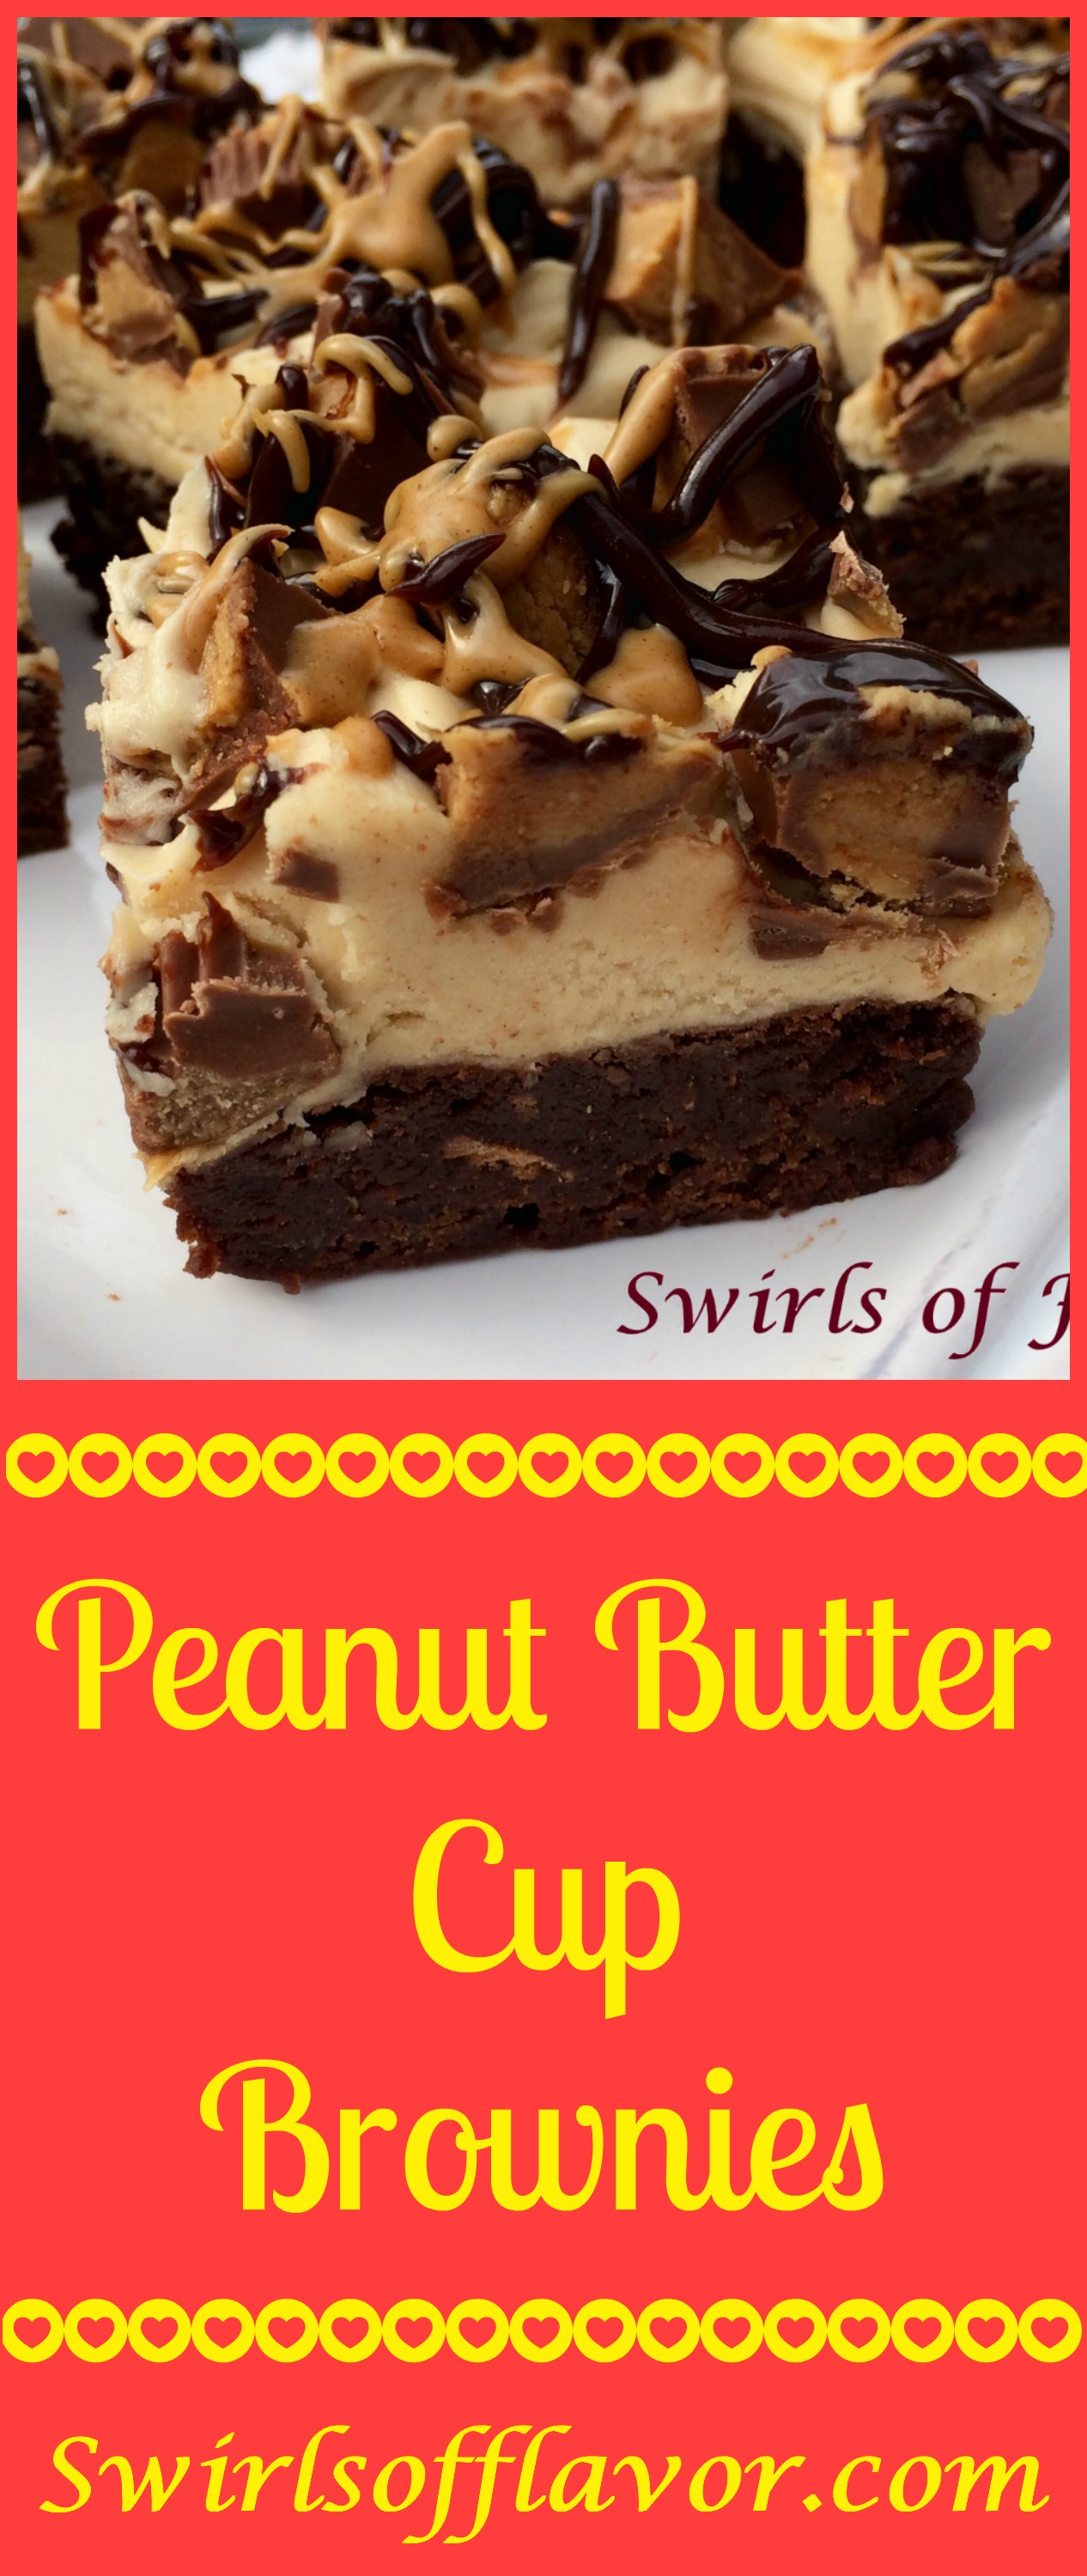 Peanut Butter Cup Brownies combine a fudgy homemade brownie with peanut butter cups and a decadent peanut butter buttercream frosting! homemade brownies | dessert | easy recipe | peanut butter | peanut butter cups | buttercream frosting | peanut butter frosting | #swirlsofflavor